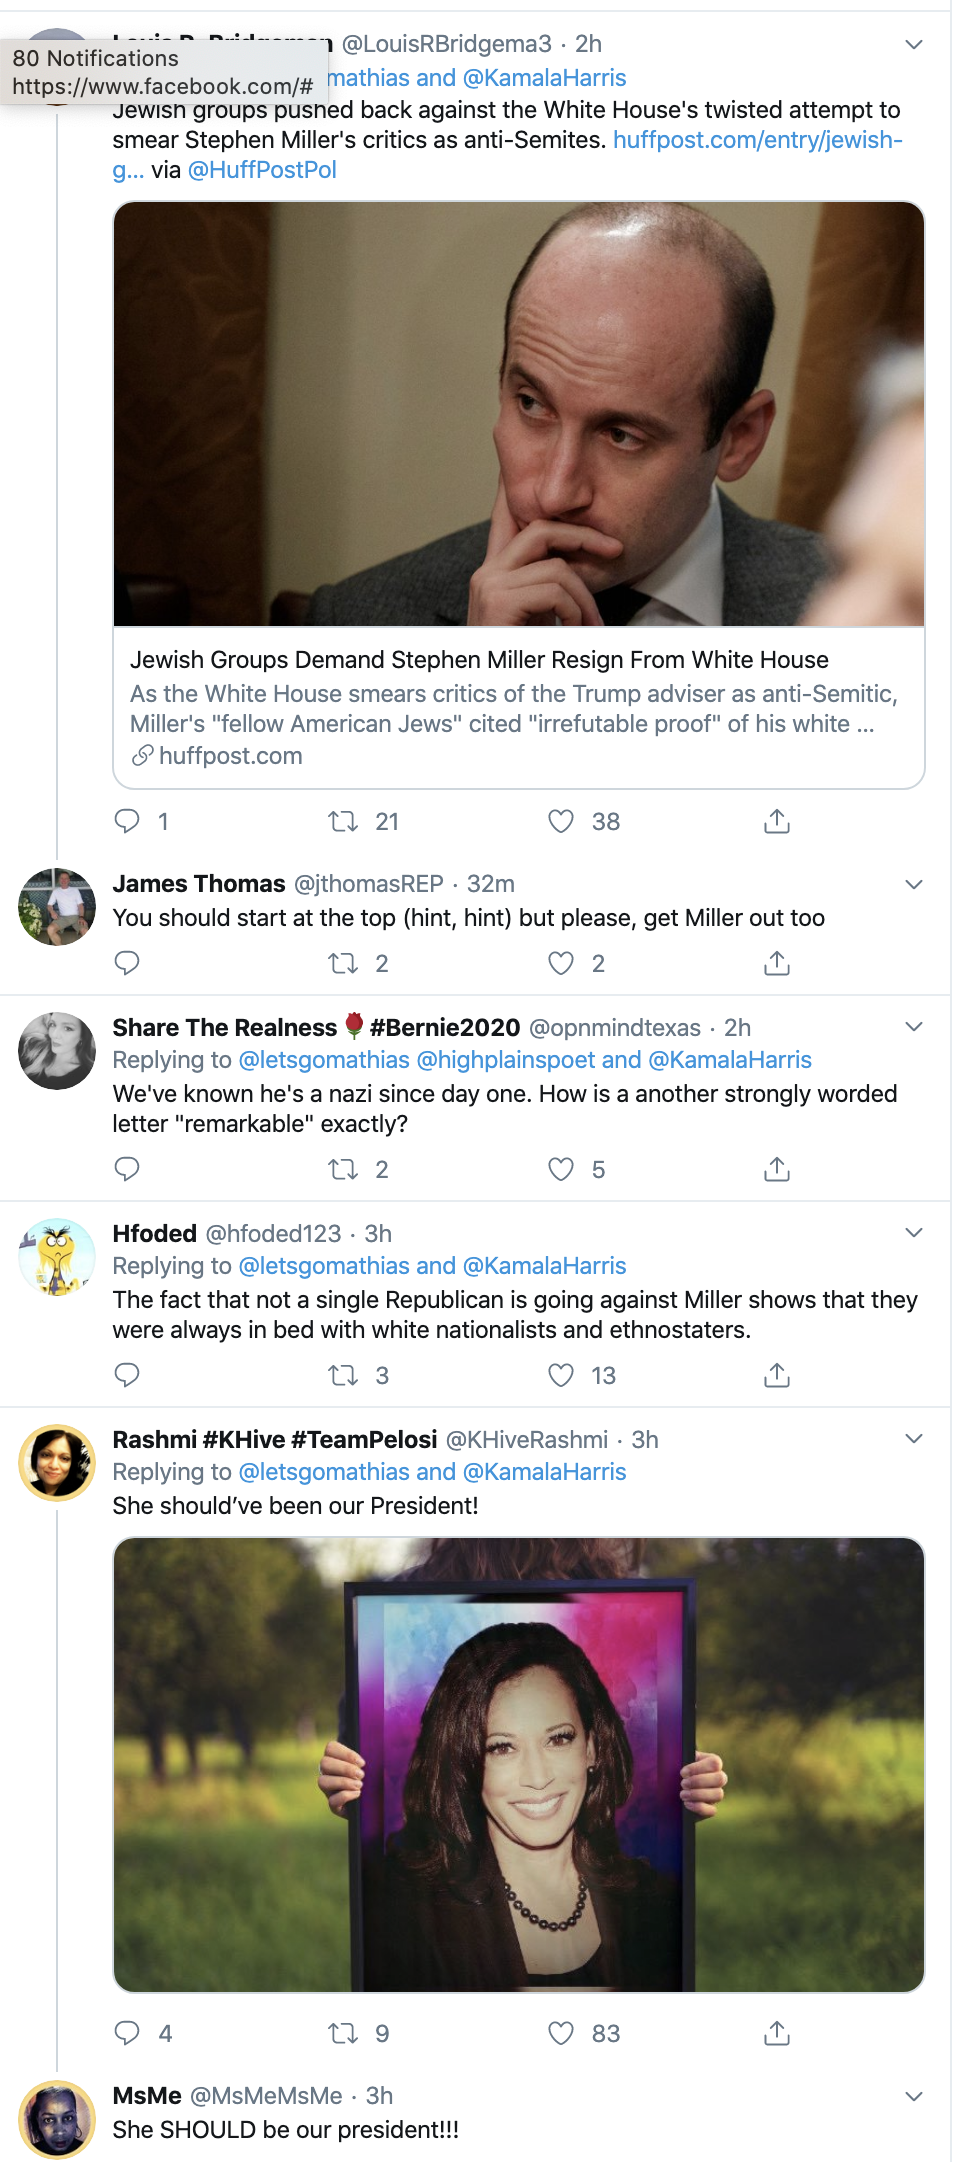 Screen-Shot-2019-12-09-at-11.45.46-AM Two Dozen Senators Call For Trump To Fire White Supremacist Miller Child Abuse Featured Immigration Top Stories White Supremacy